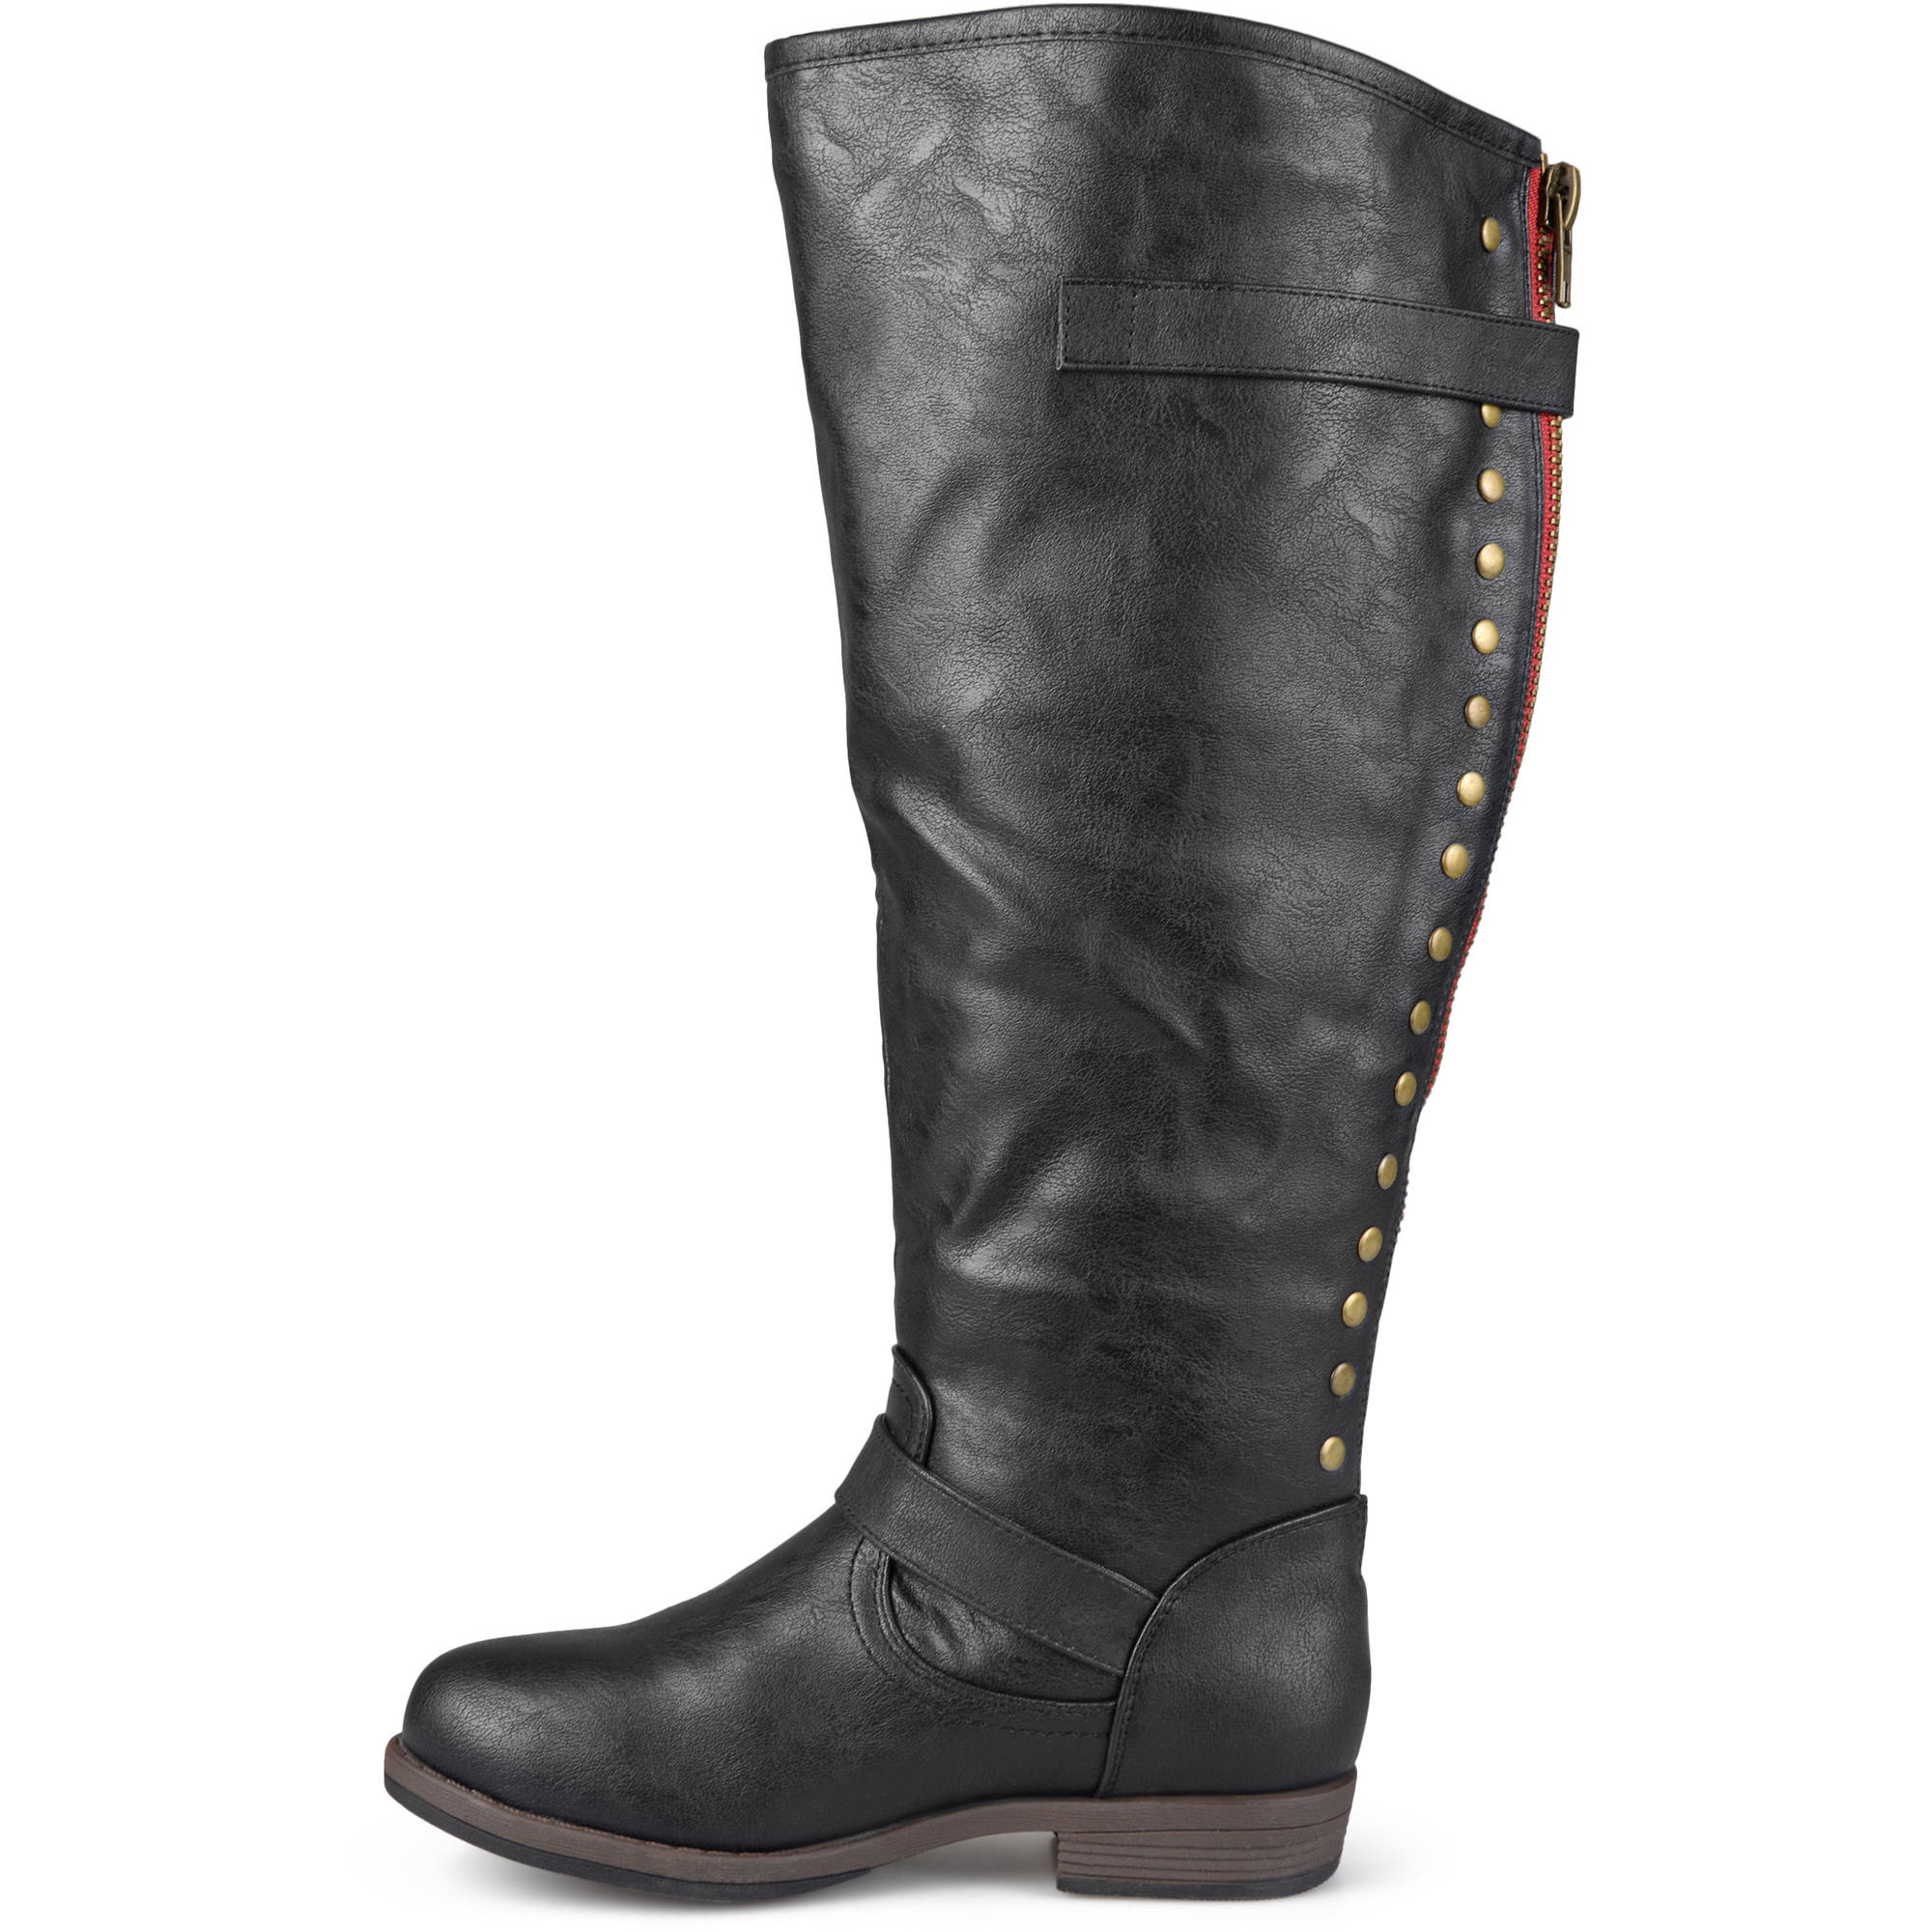 082eeb997f4f Womens Extra Wide Calf Knee-high Studded Riding Boots .